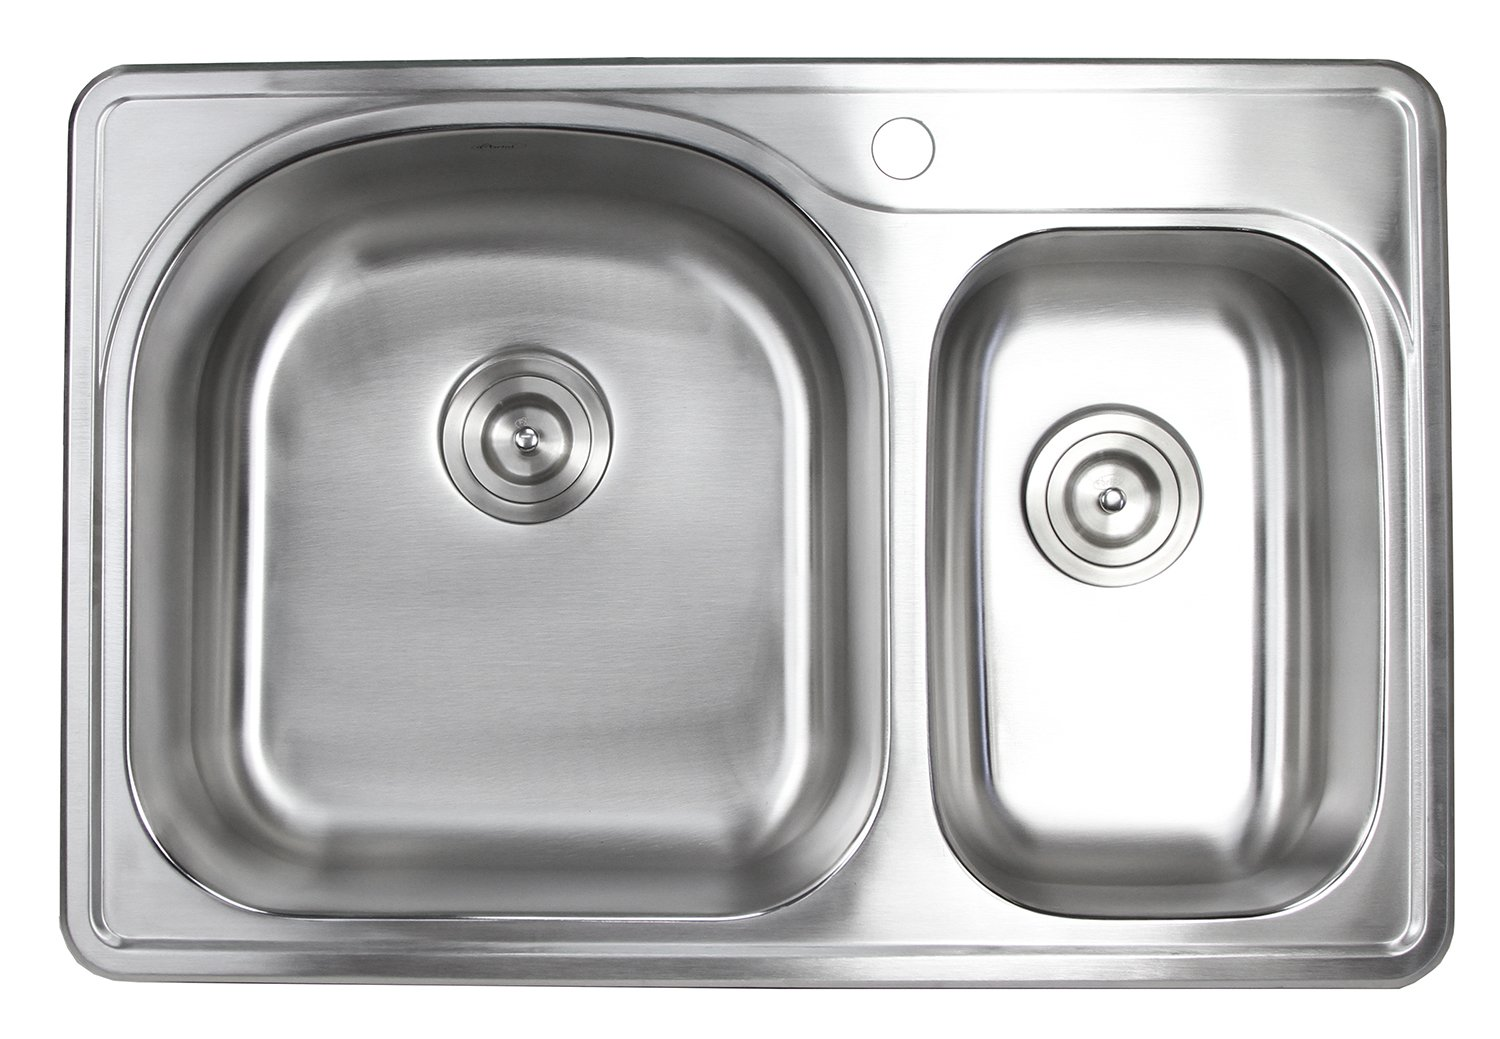 33 Inch Top-mount Drop-in Stainless Steel 70 30 Double Bowl Kitchen Sink With 1 Faucet Hole – 18 Gauge